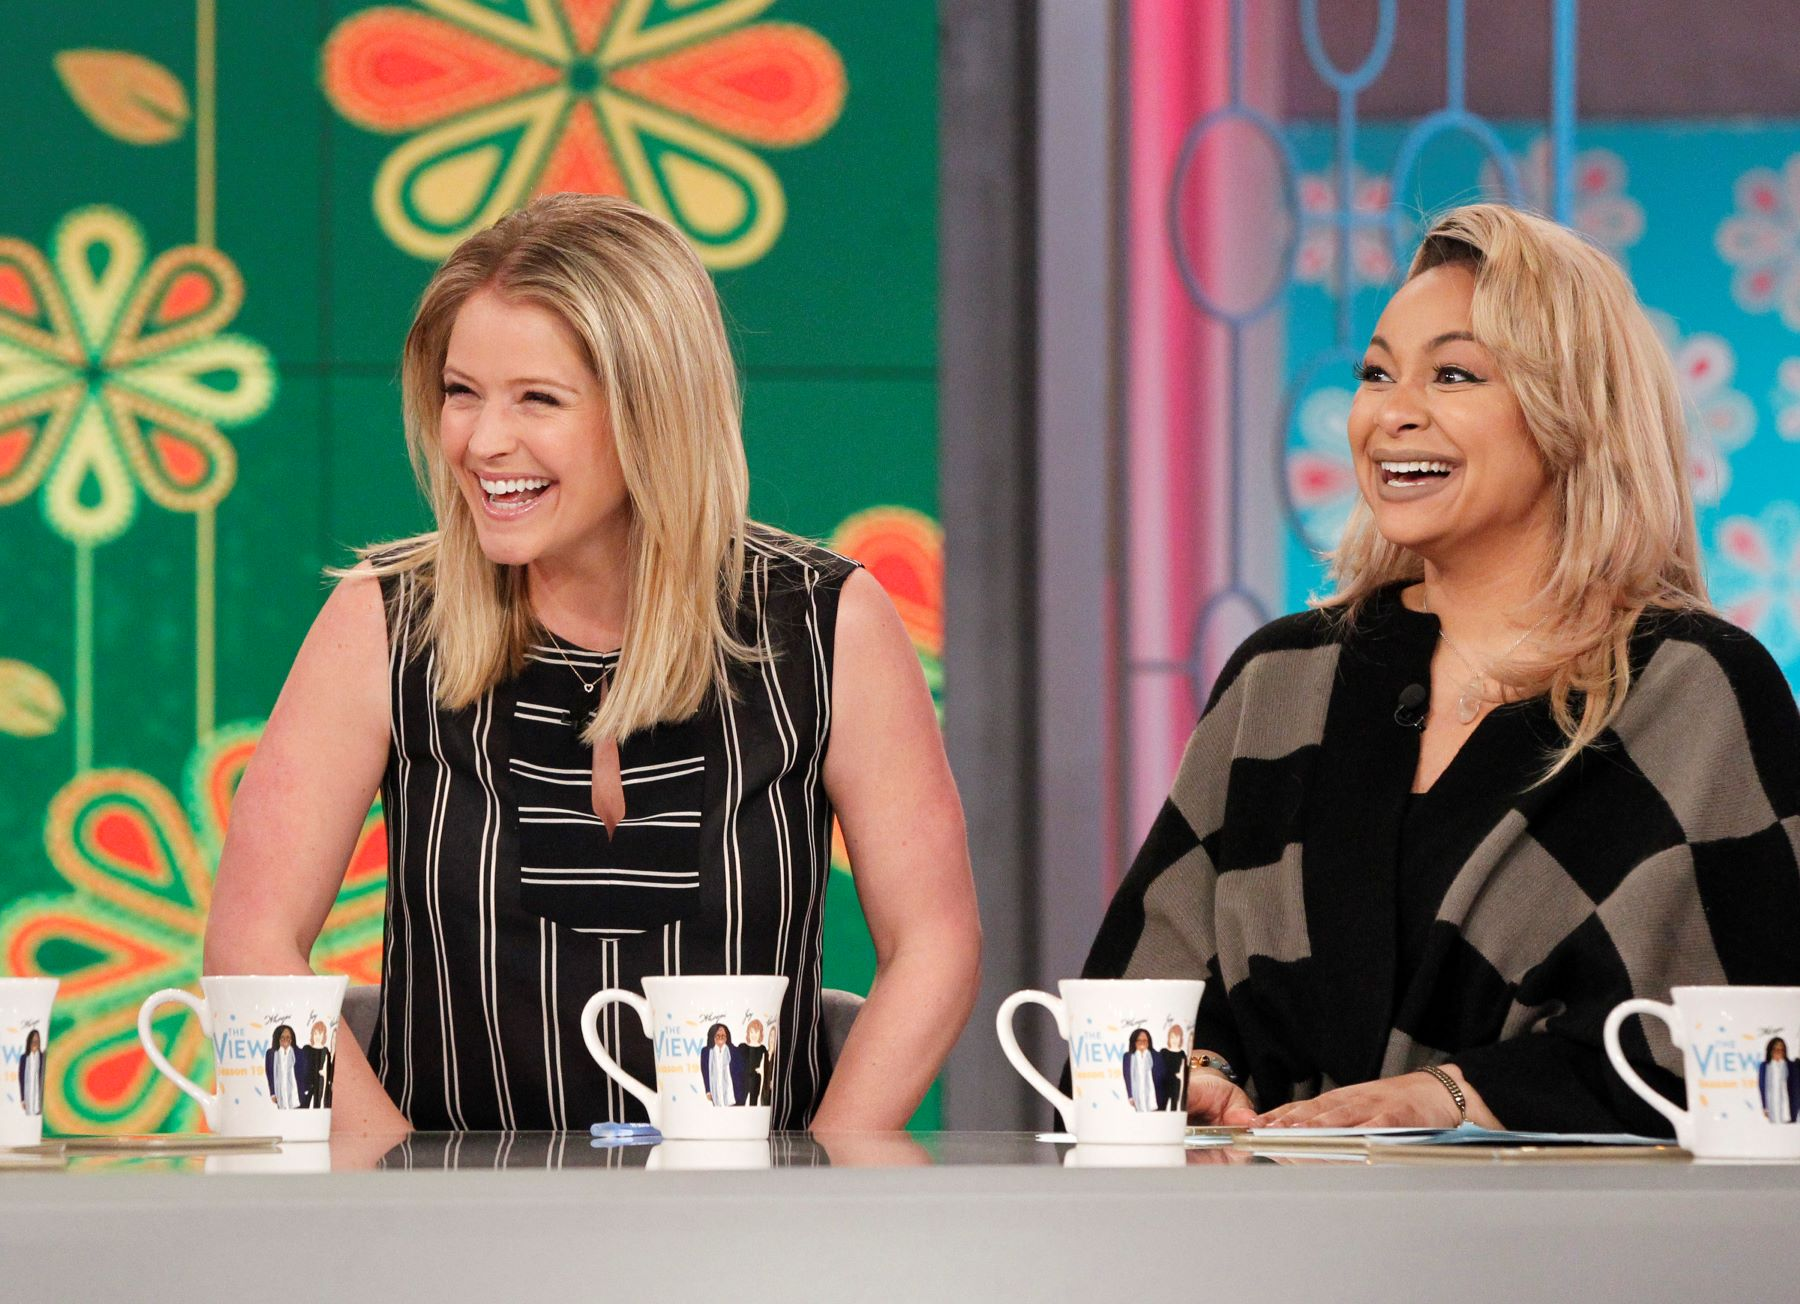 Sarah Haines and Raven Symone on The View